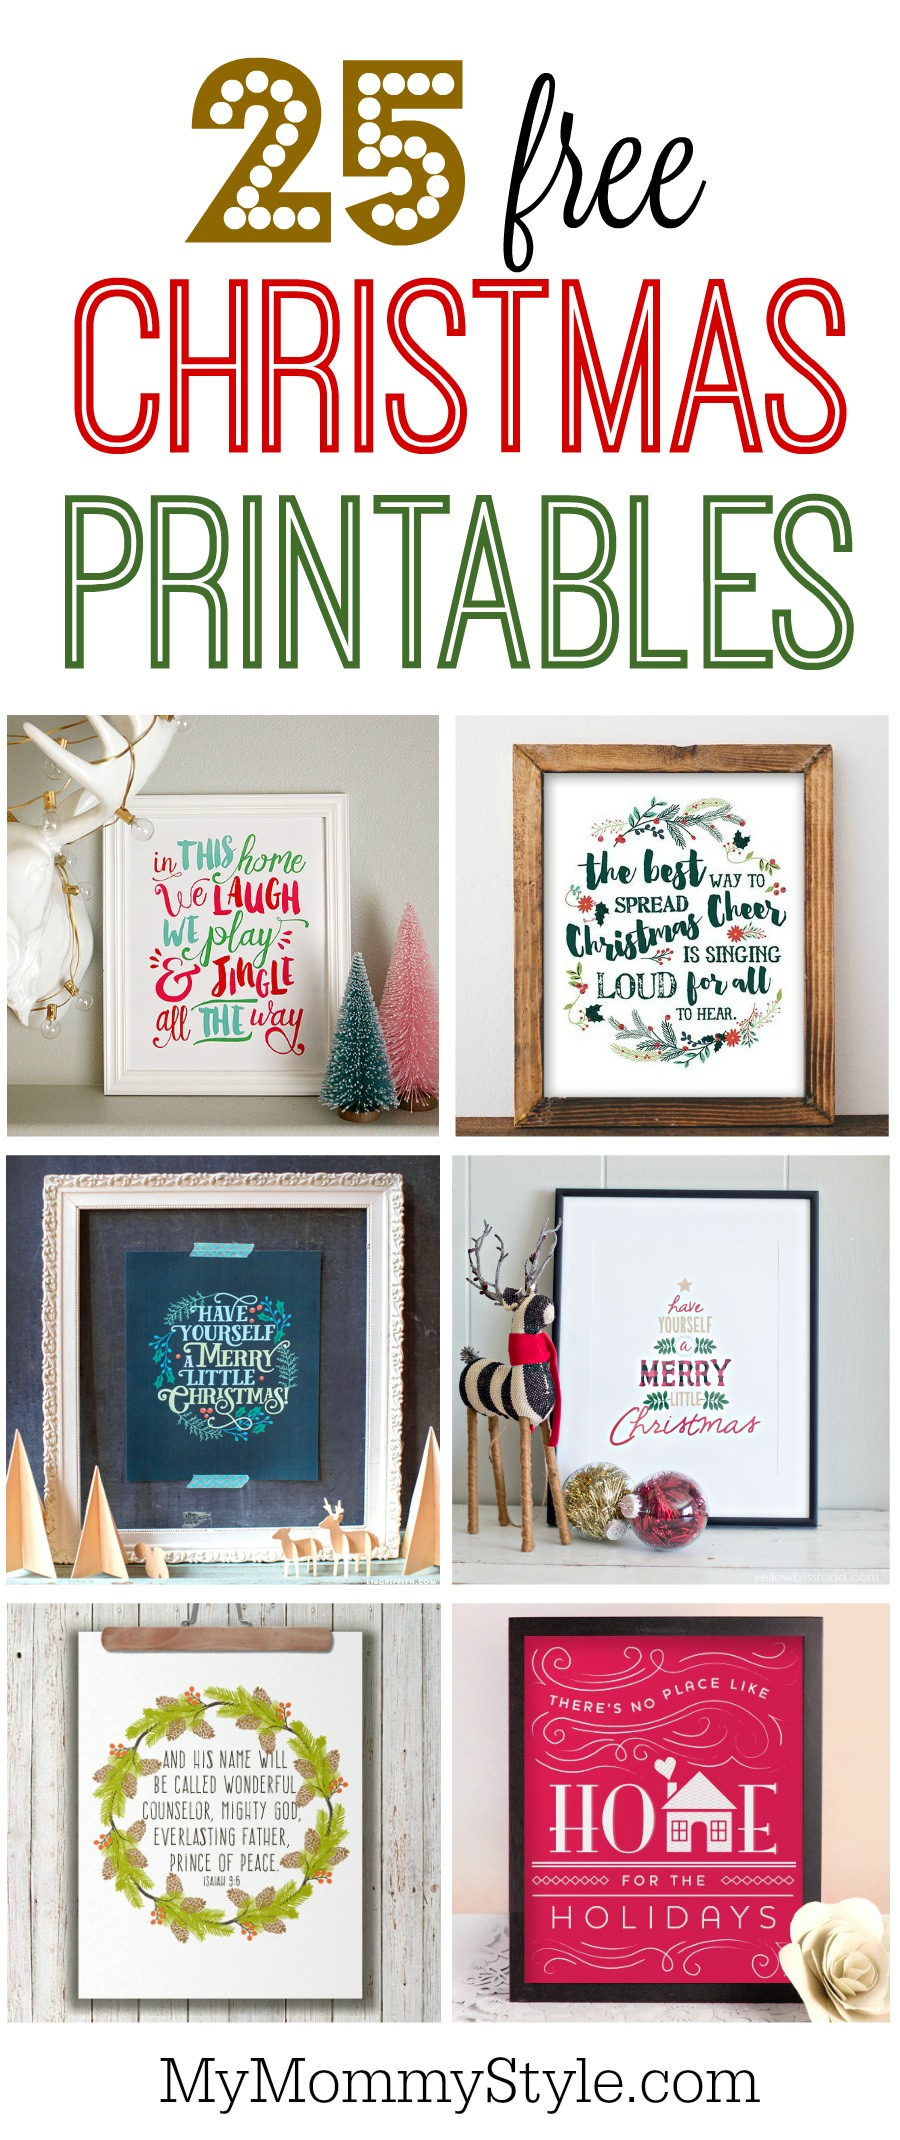 25 Free Christmas Printables - My Mommy Style - Free Printable Christmas Pictures